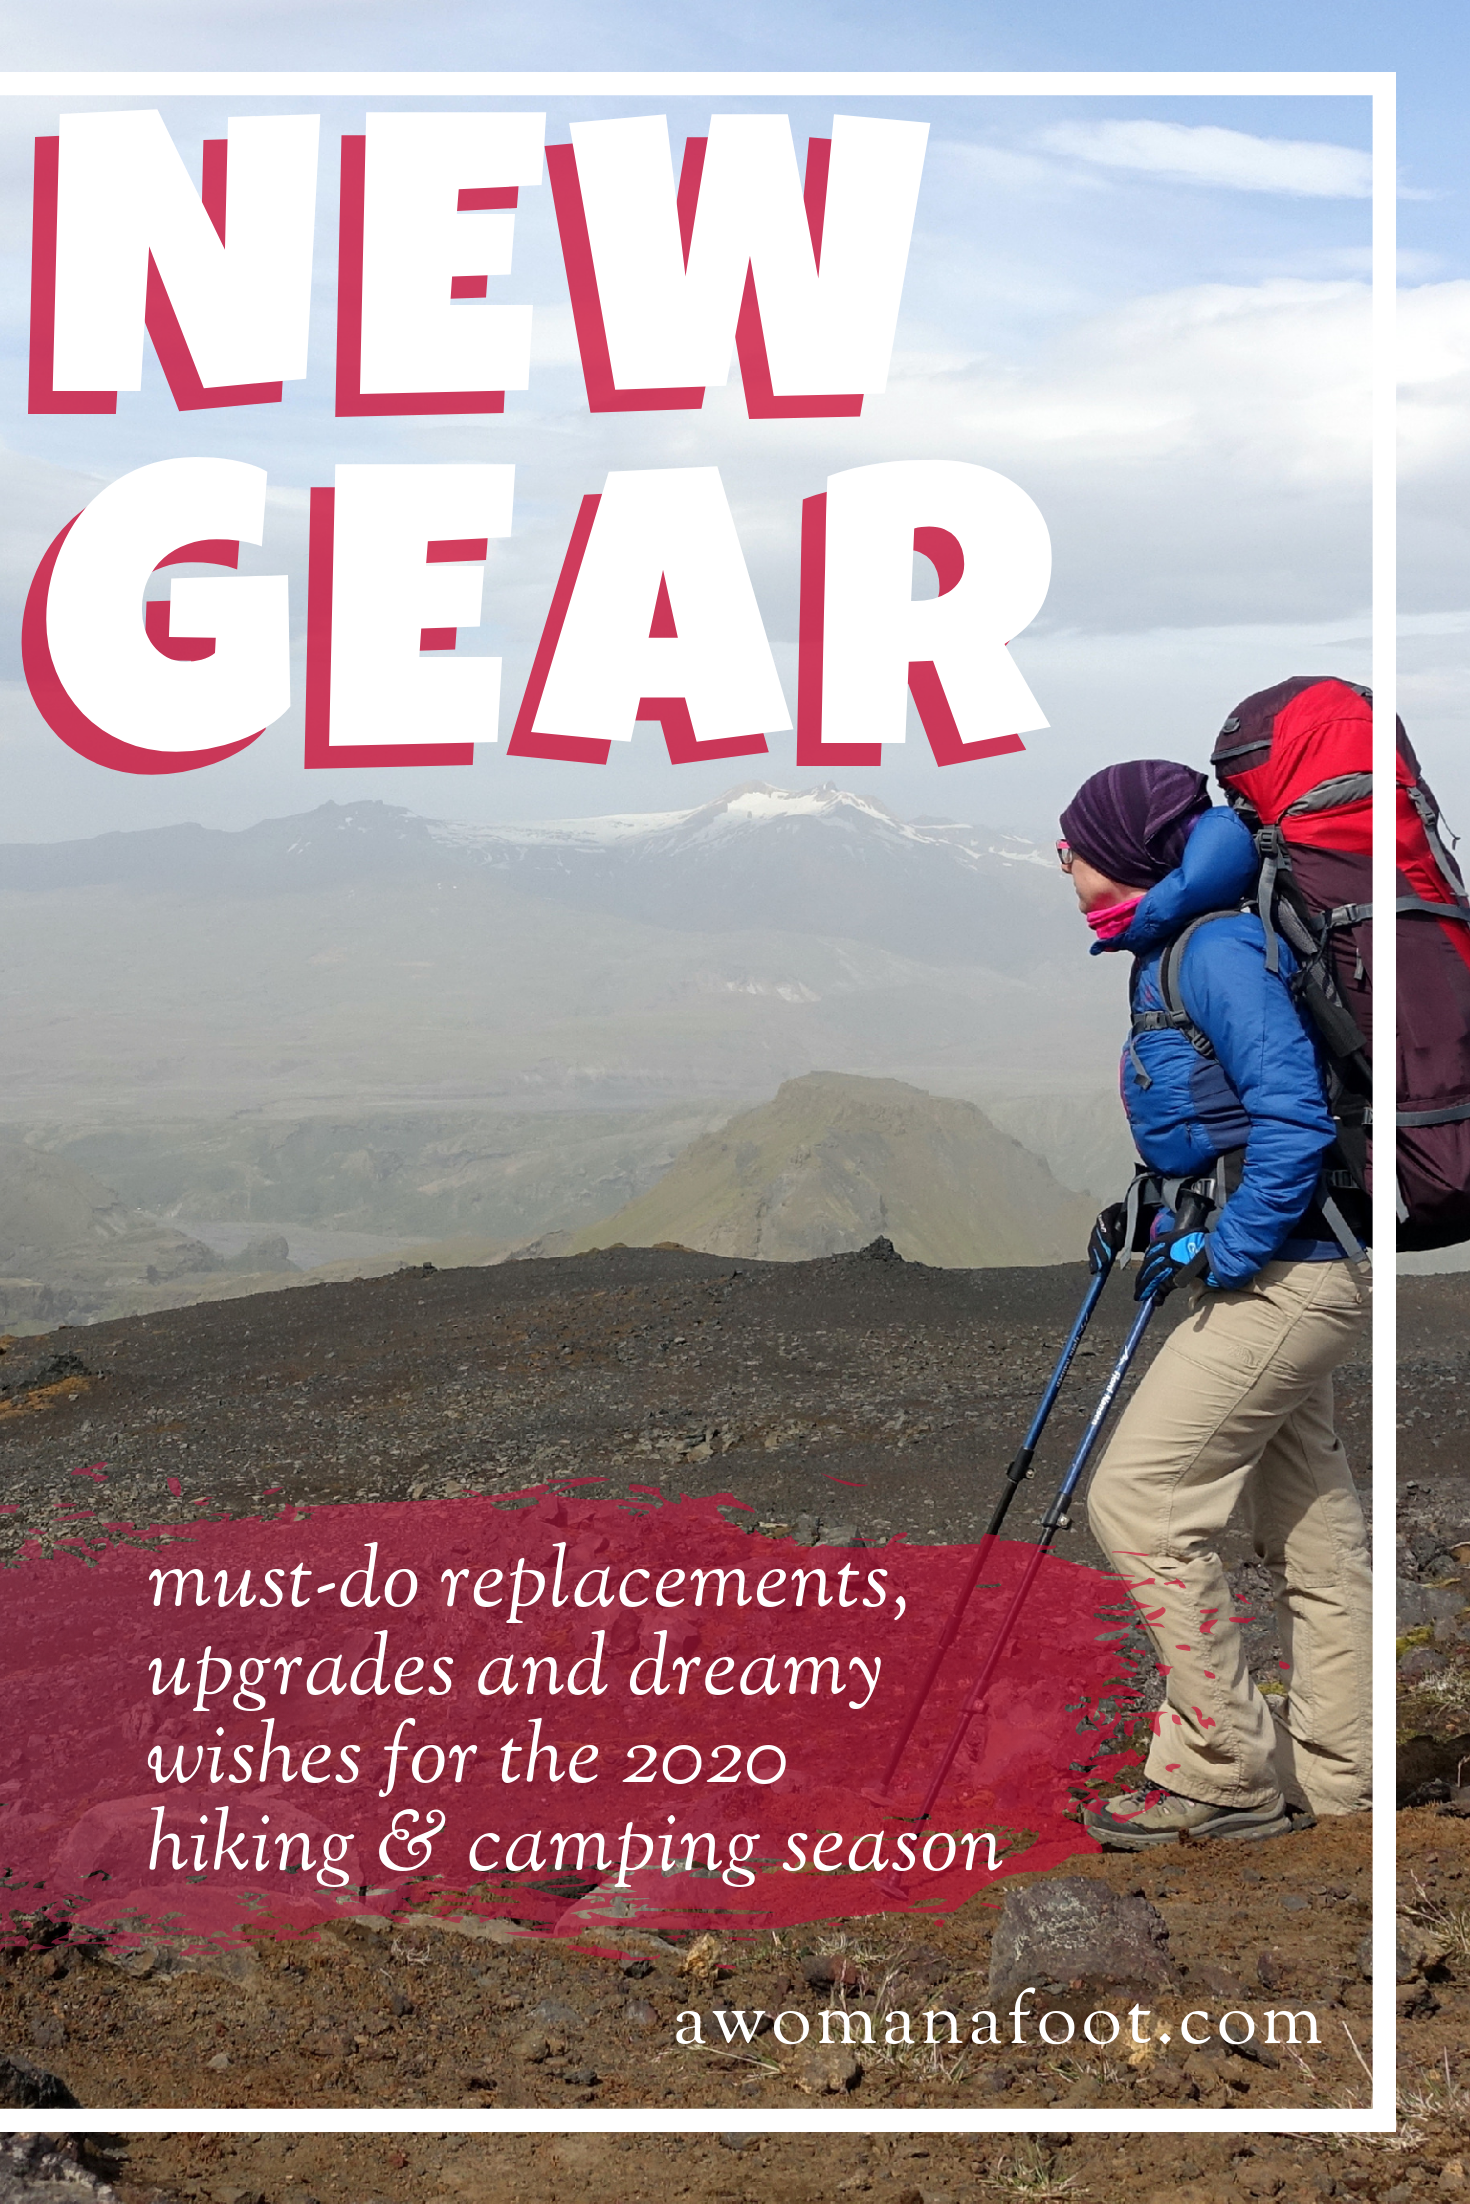 Check out my list of must-do replacements, upgrades and dreamy wishes for the new hiking & camping season @ awomanafoot.com | Hiking gear for women | Camping tips and advice | Hiking clothes for women | What to pack for mountain trip | #Hiking #Camping #Gear #FemaleHiker | Best hiking gear for women |